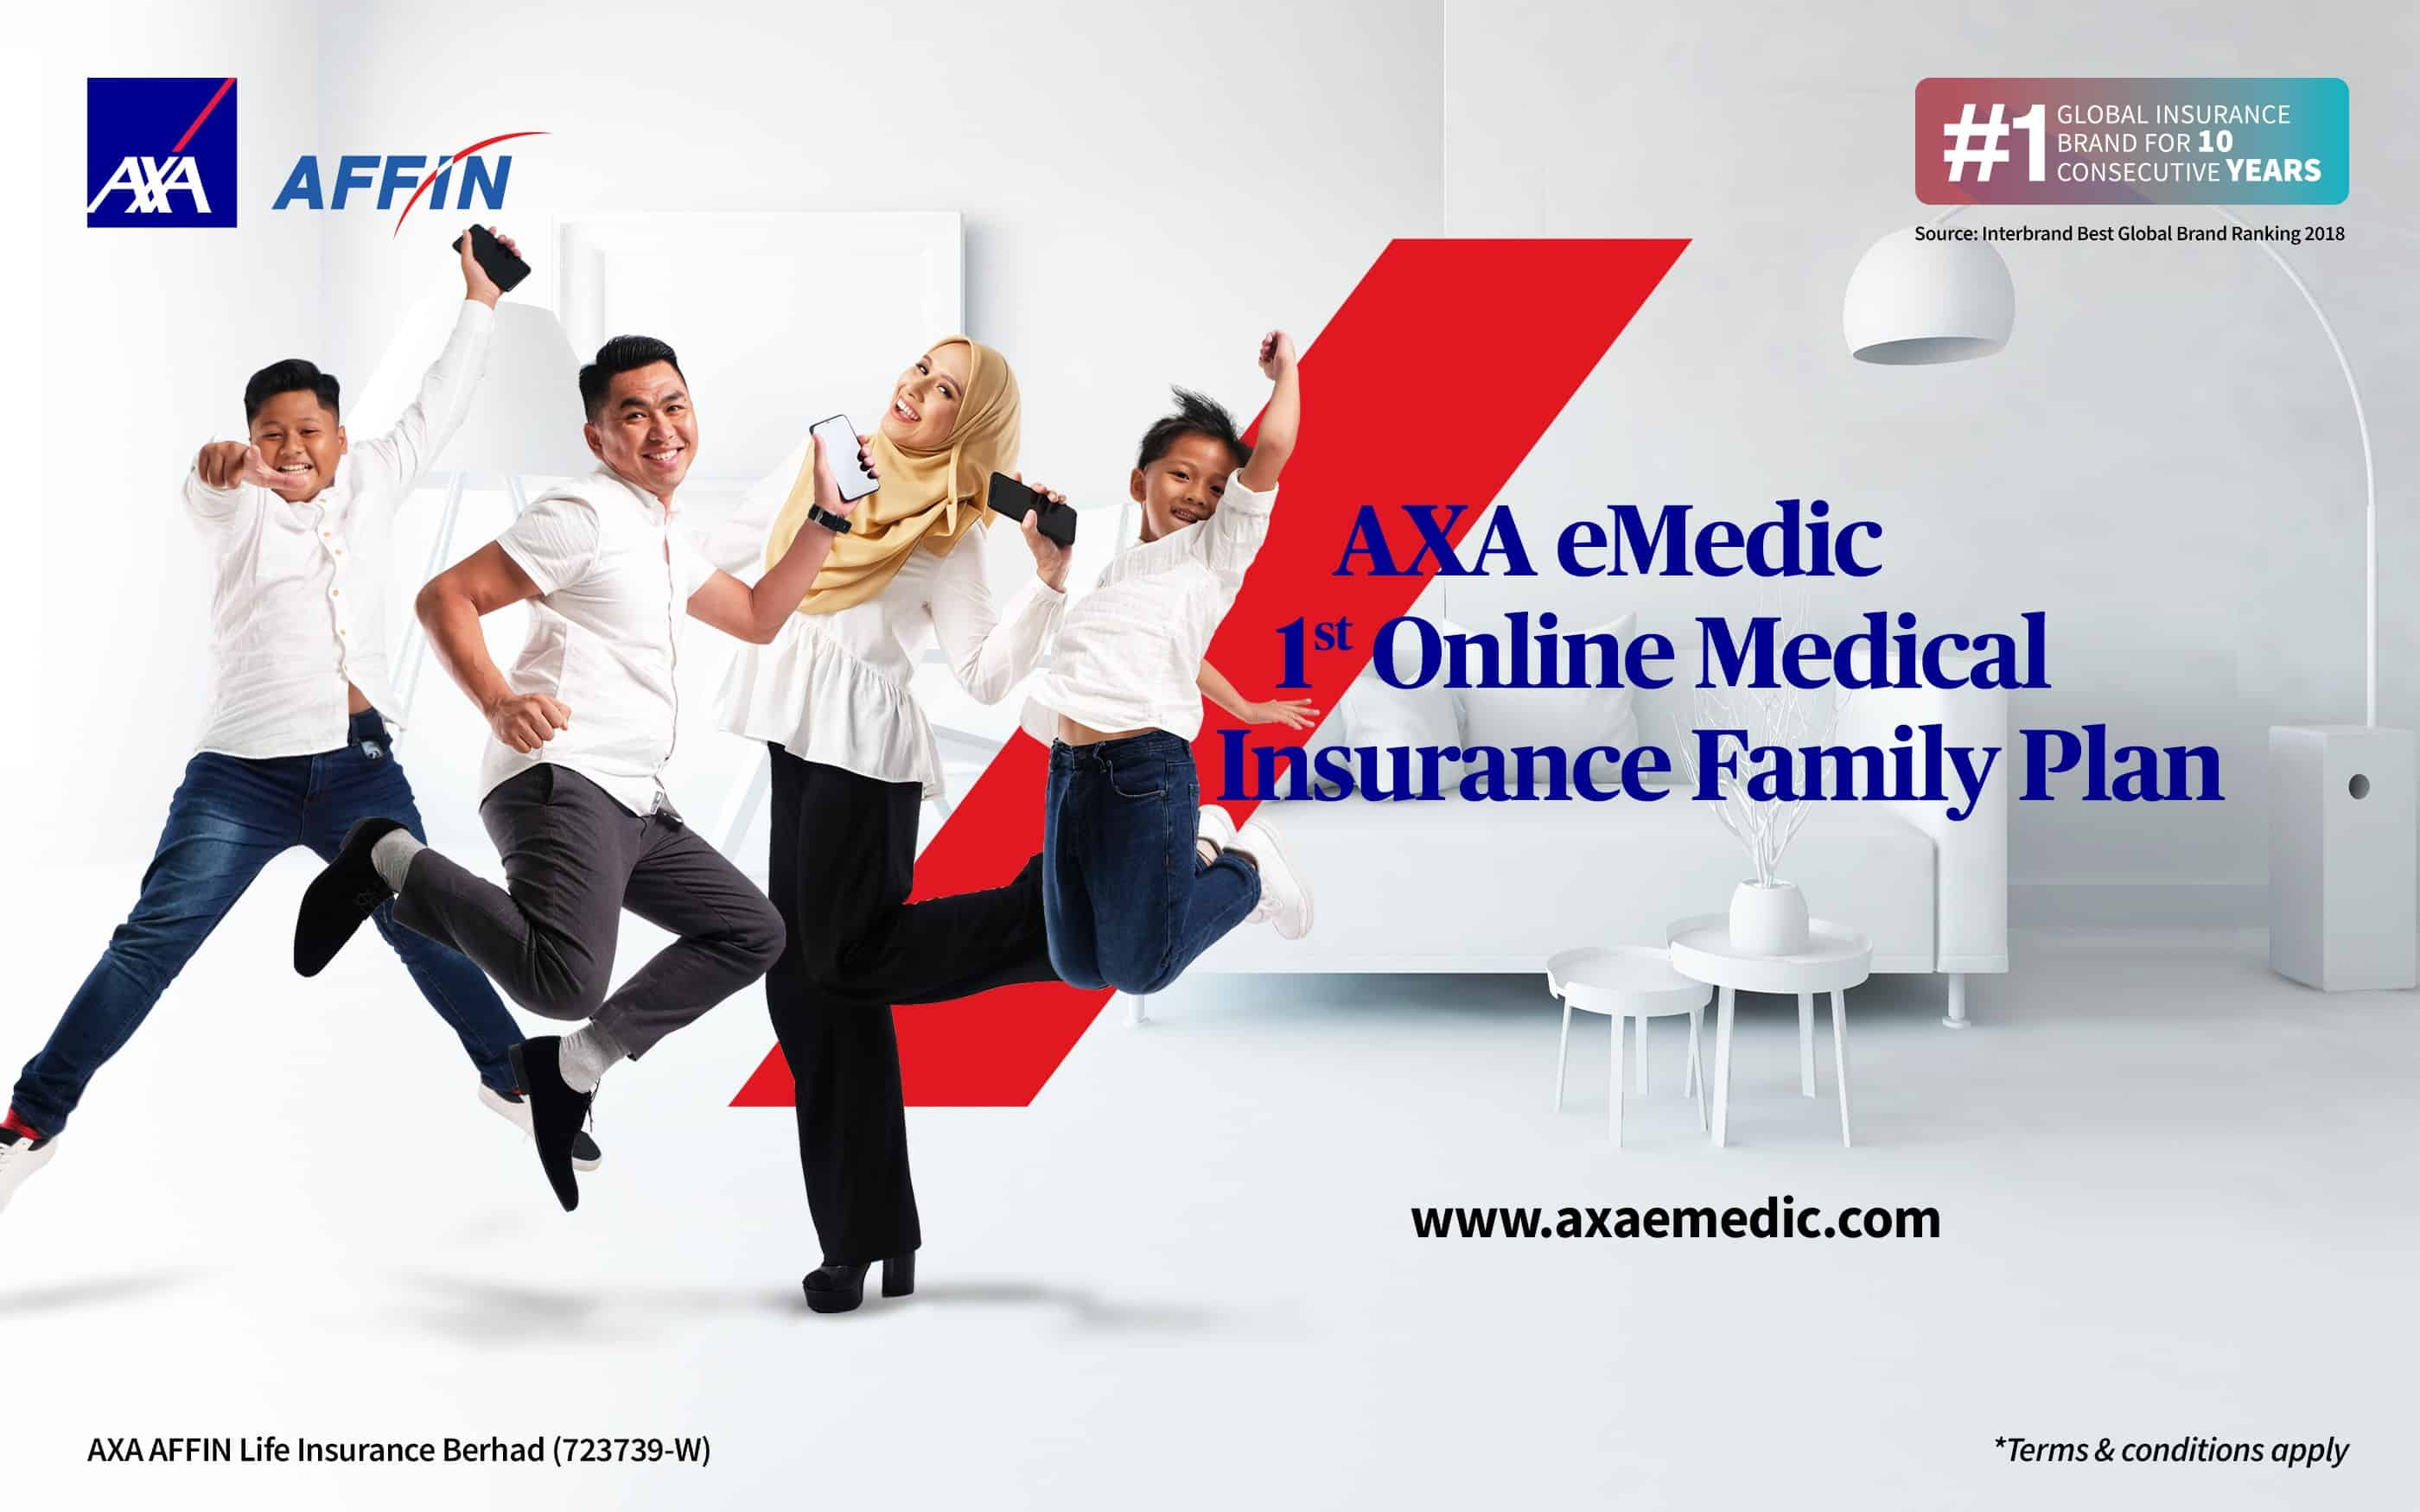 AXA AFFIN unveils a revolutionary offering of online Medical Card targeting young families in Malaysia